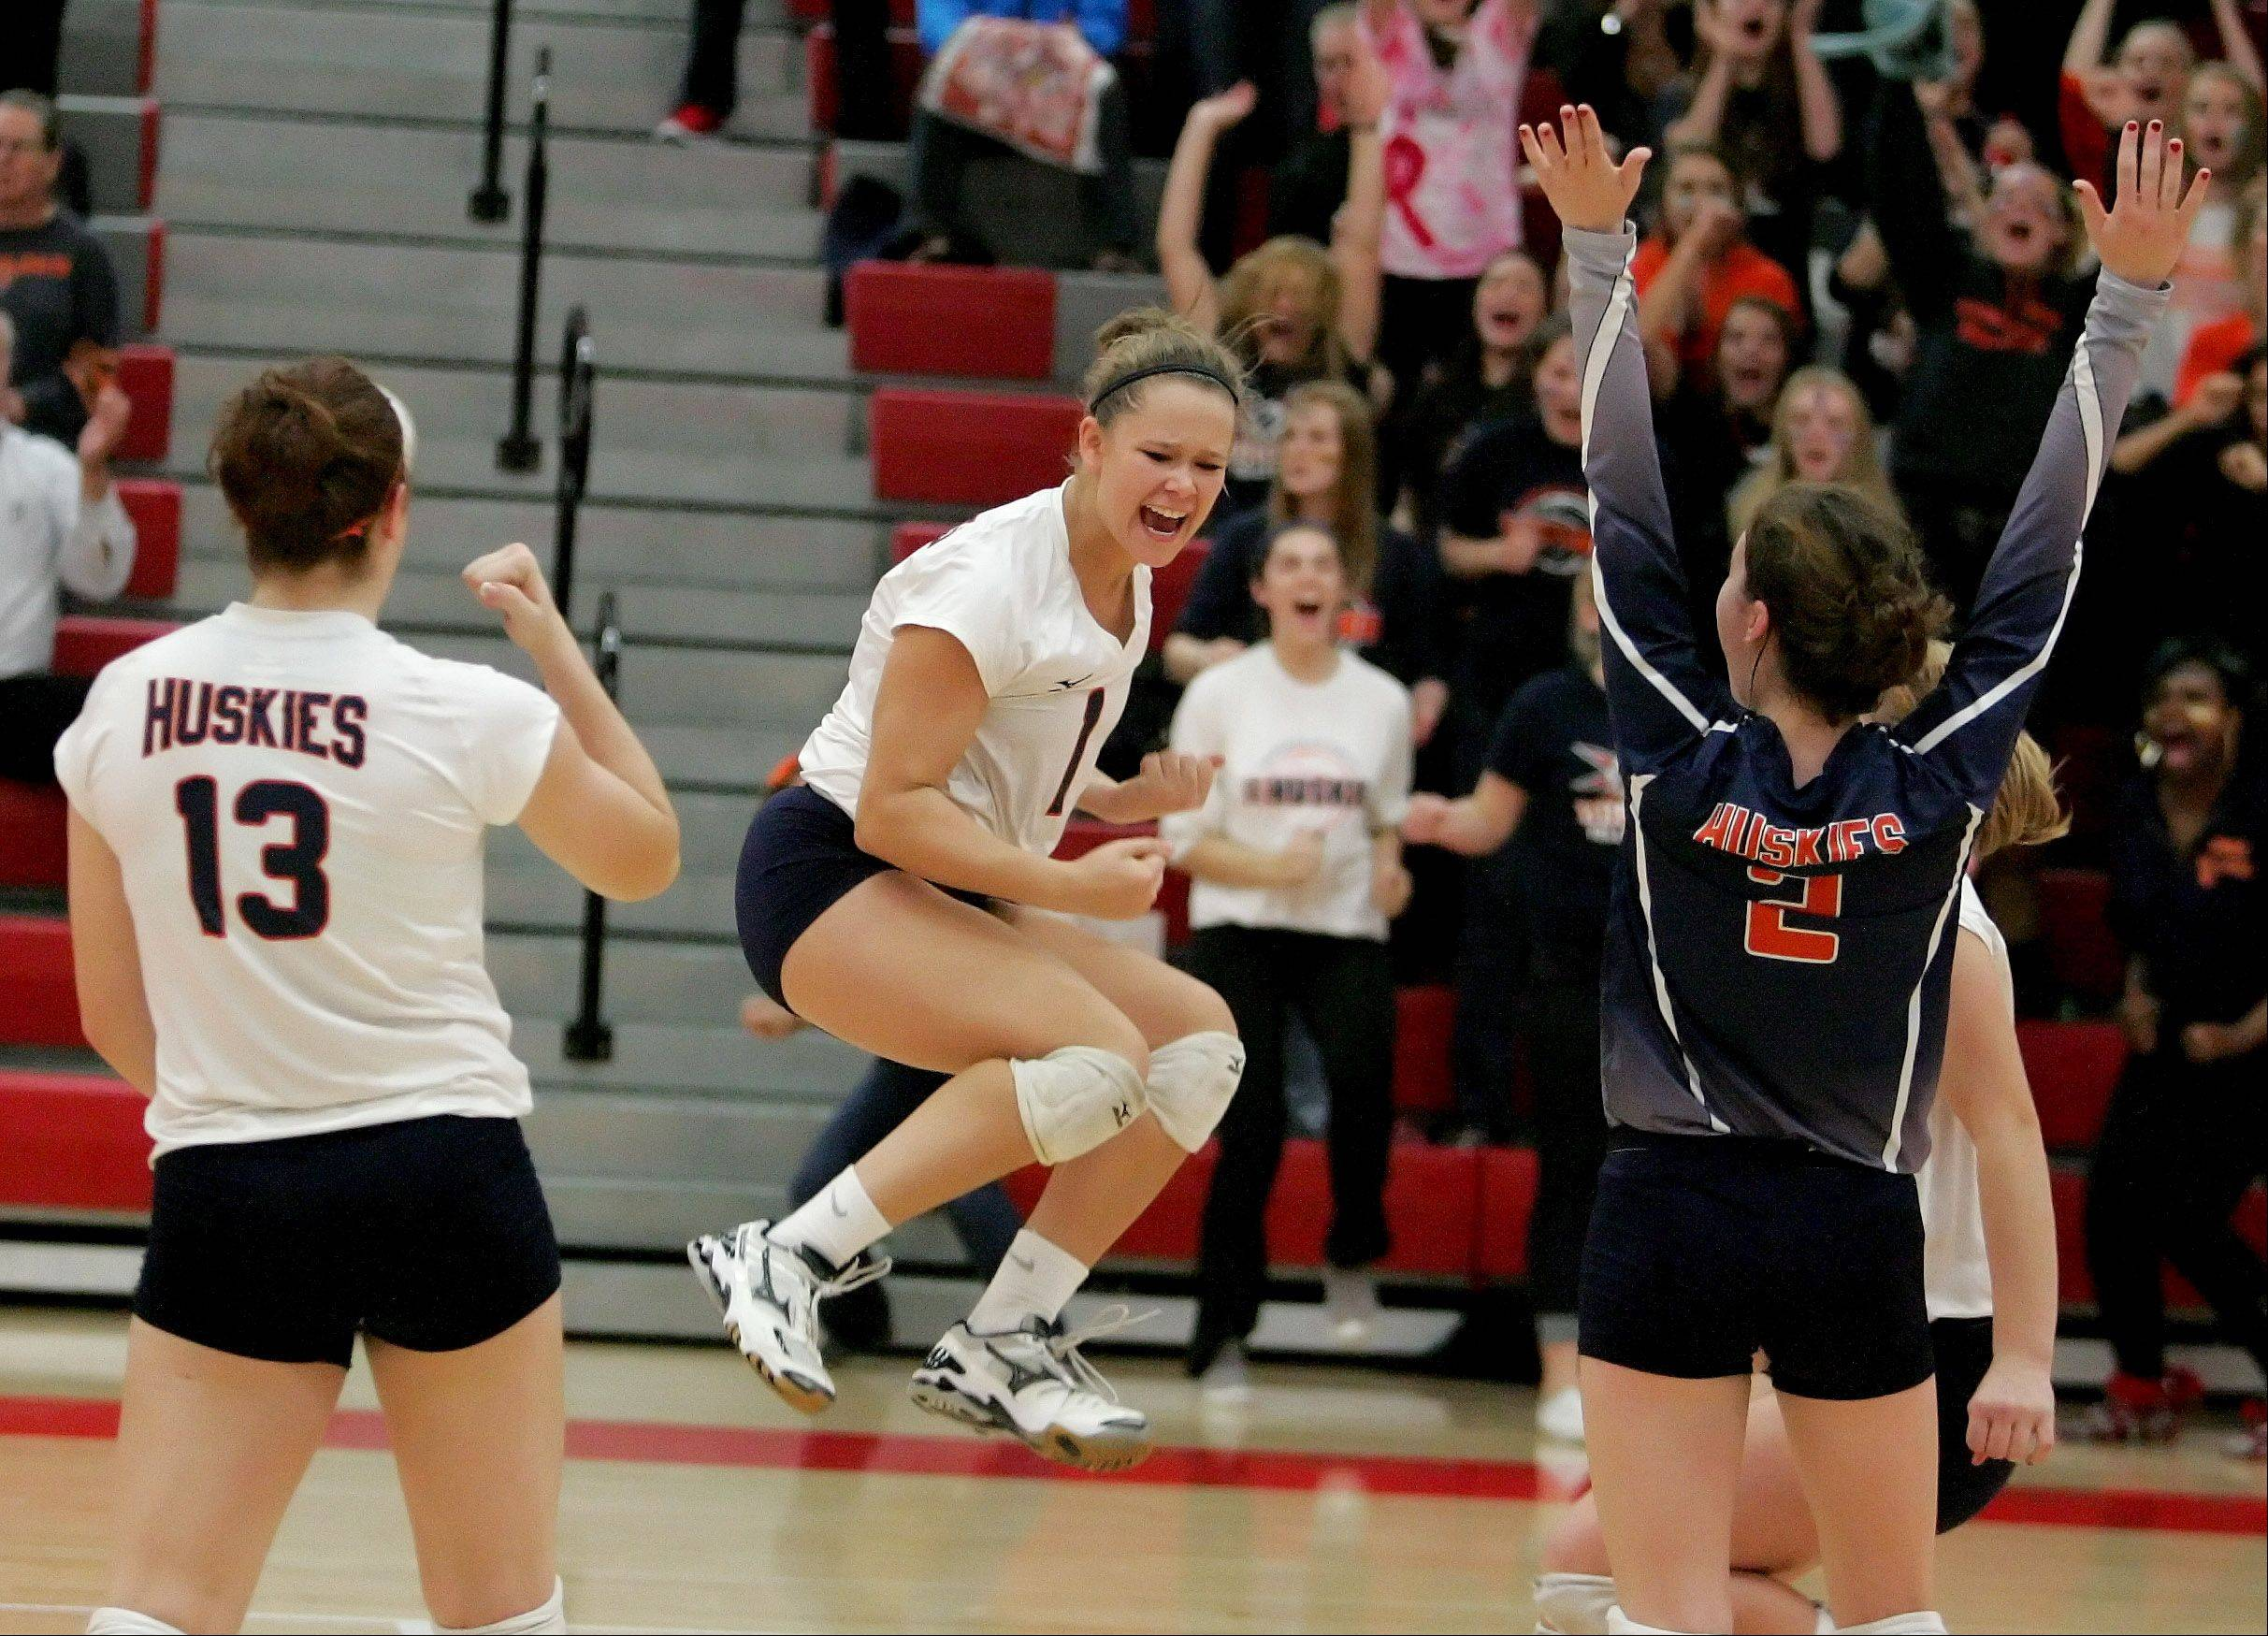 Naperville North players react to winning the first game over Neuqua Valley in Class 4A girls volleyball regional semifinals at Naperville Central on Monday. Naperville North won the match 2-0.